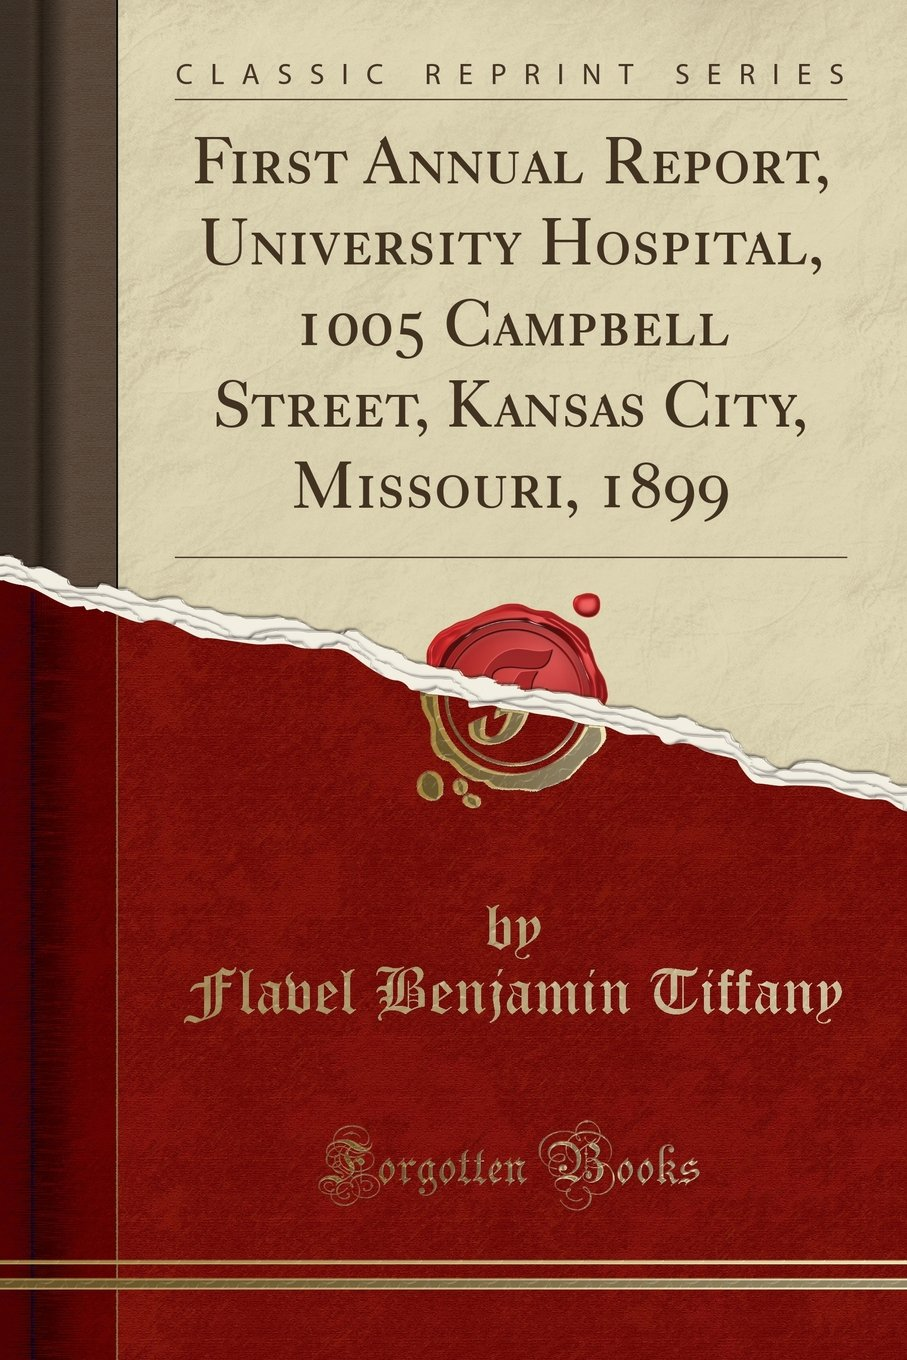 First Annual Report, University Hospital, 1005 Campbell